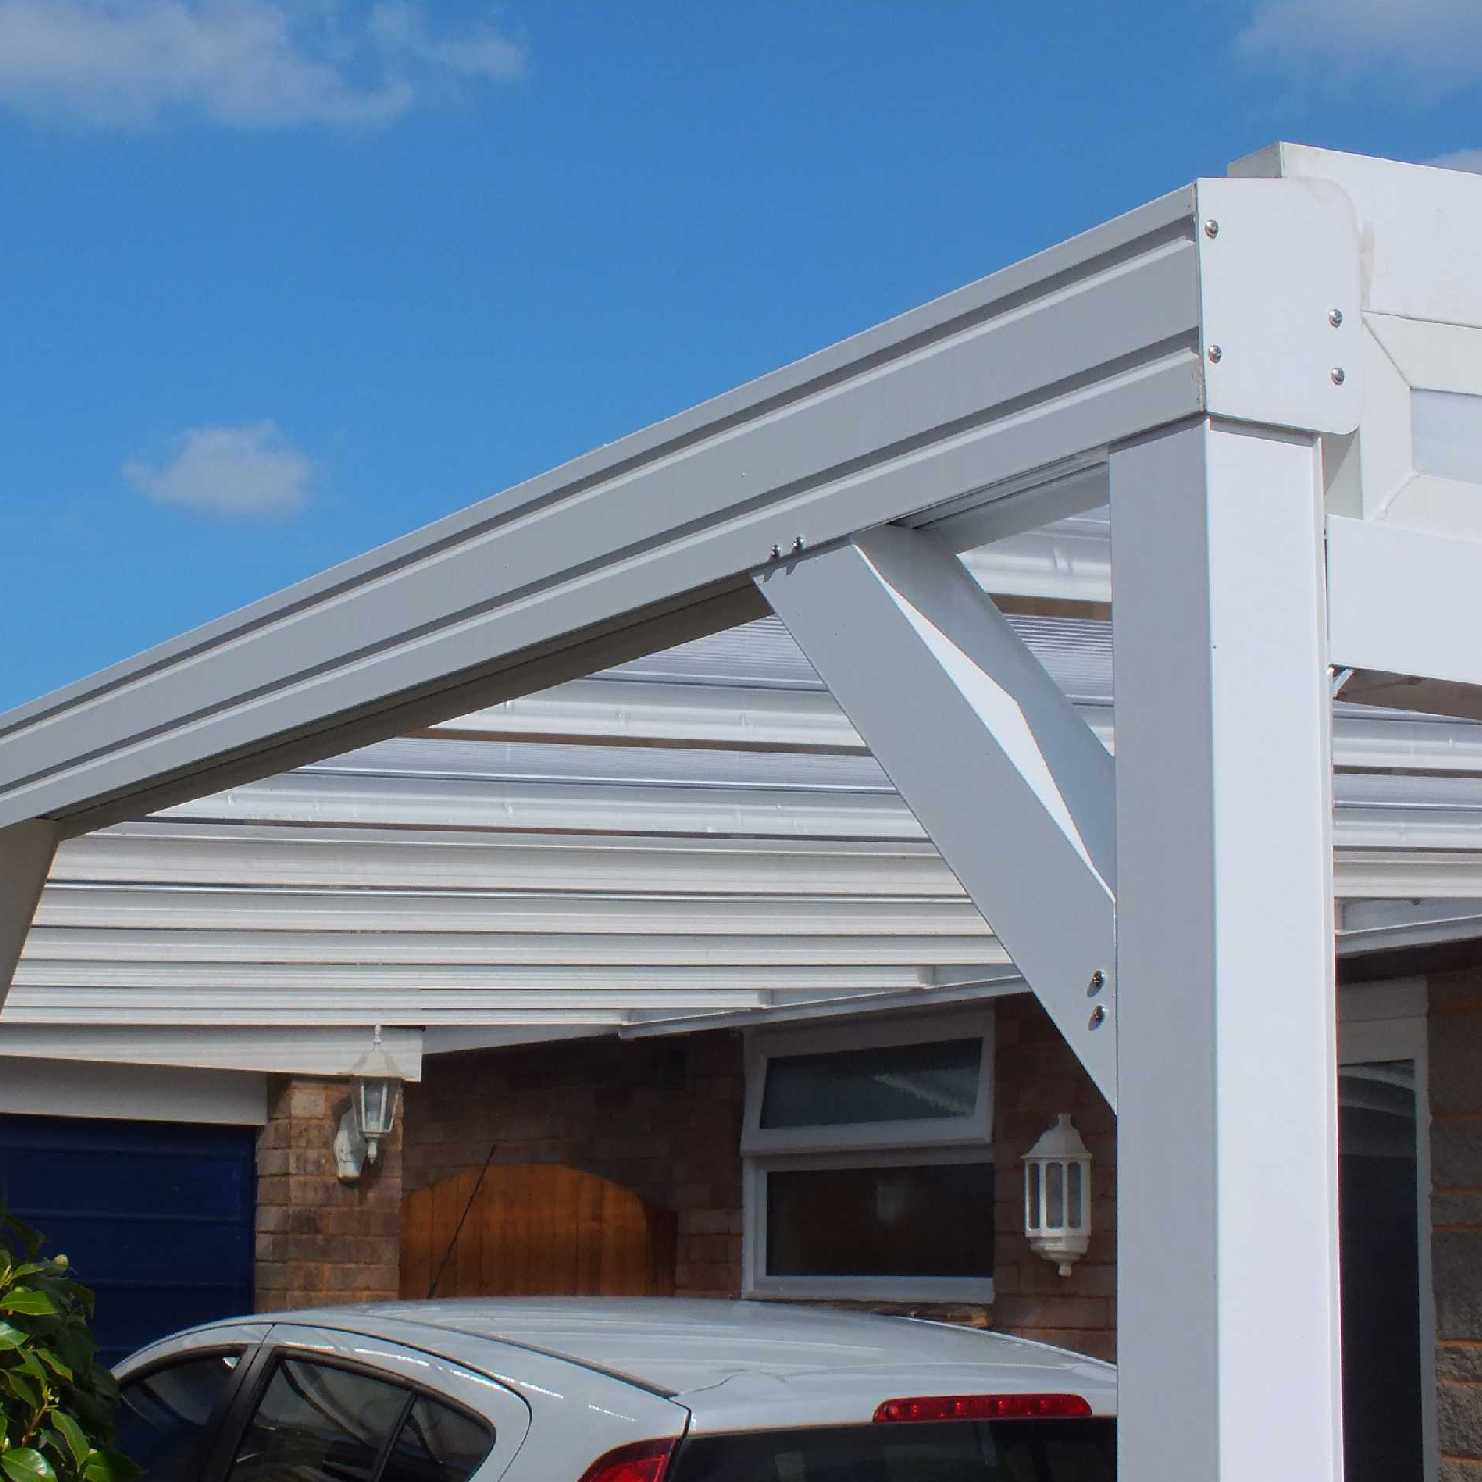 Great deals on Omega Smart  White Lean-To Canopy with 16mm Polycarbonate Glazing - 10.6m (W) x 2.0m (P), (5) Supporting Posts